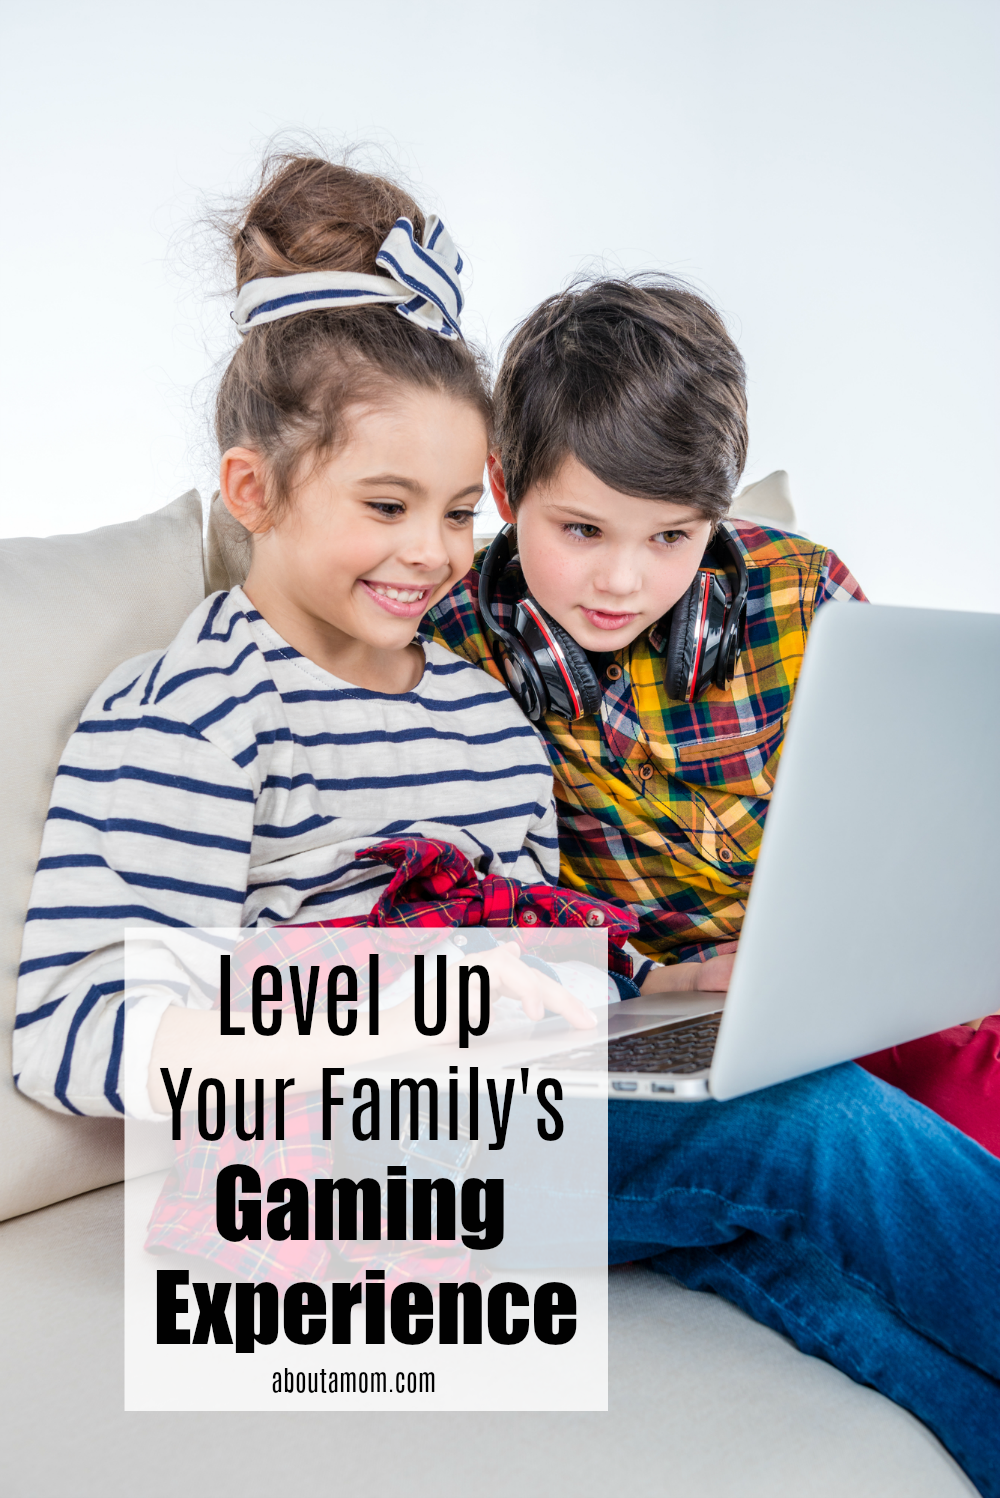 Don't be in the dark when you buy your family's next computer for gaming. Visit THE IN-CROWD on HSN at INTEL.HSN.COM and level up your family gaming experience.